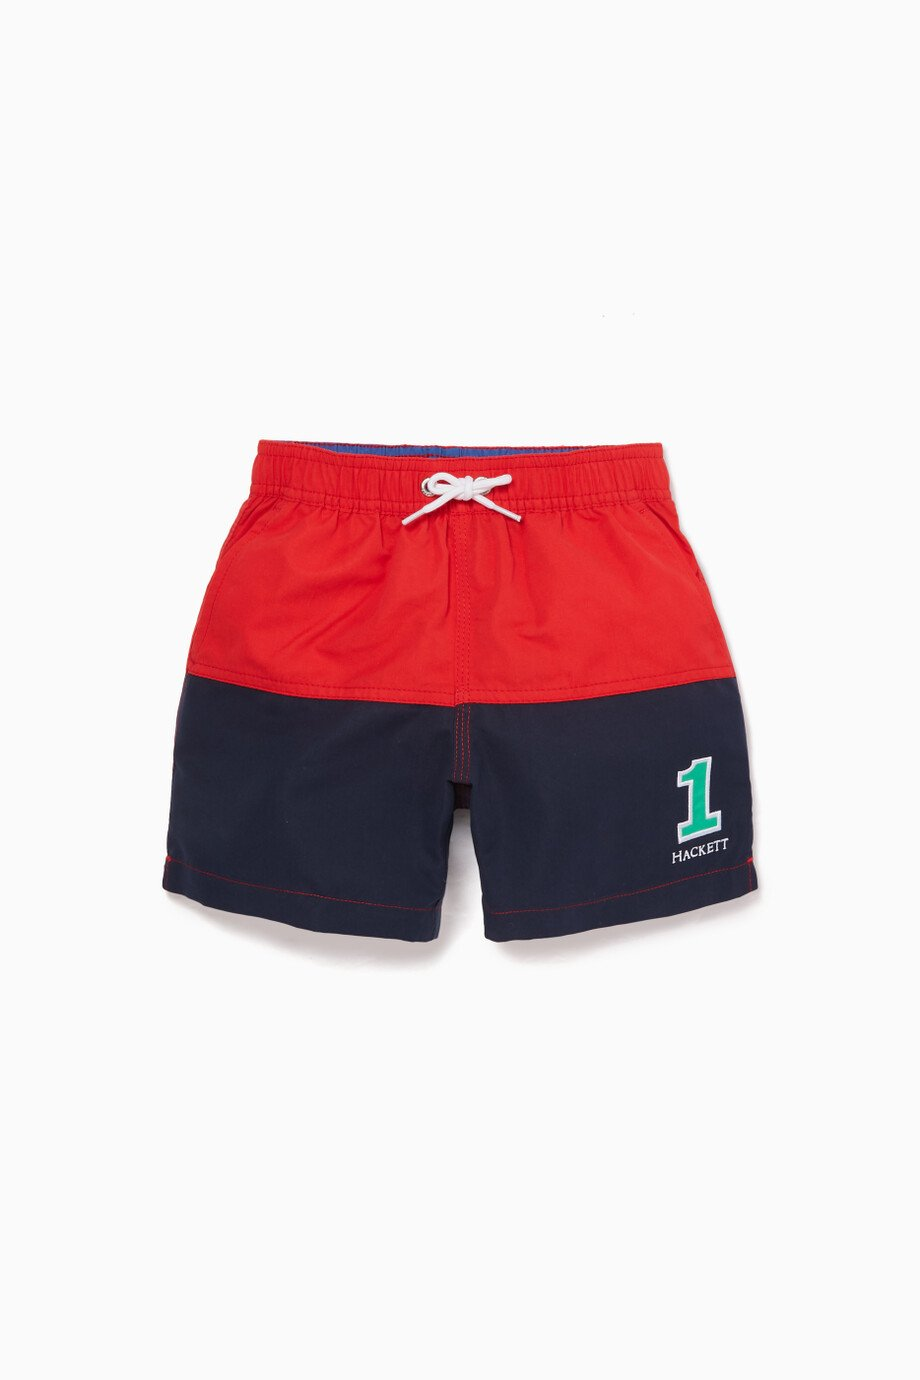 99519c8305 Shop Hackett Red Two-Tone Swim Shorts for Kids | Ounass